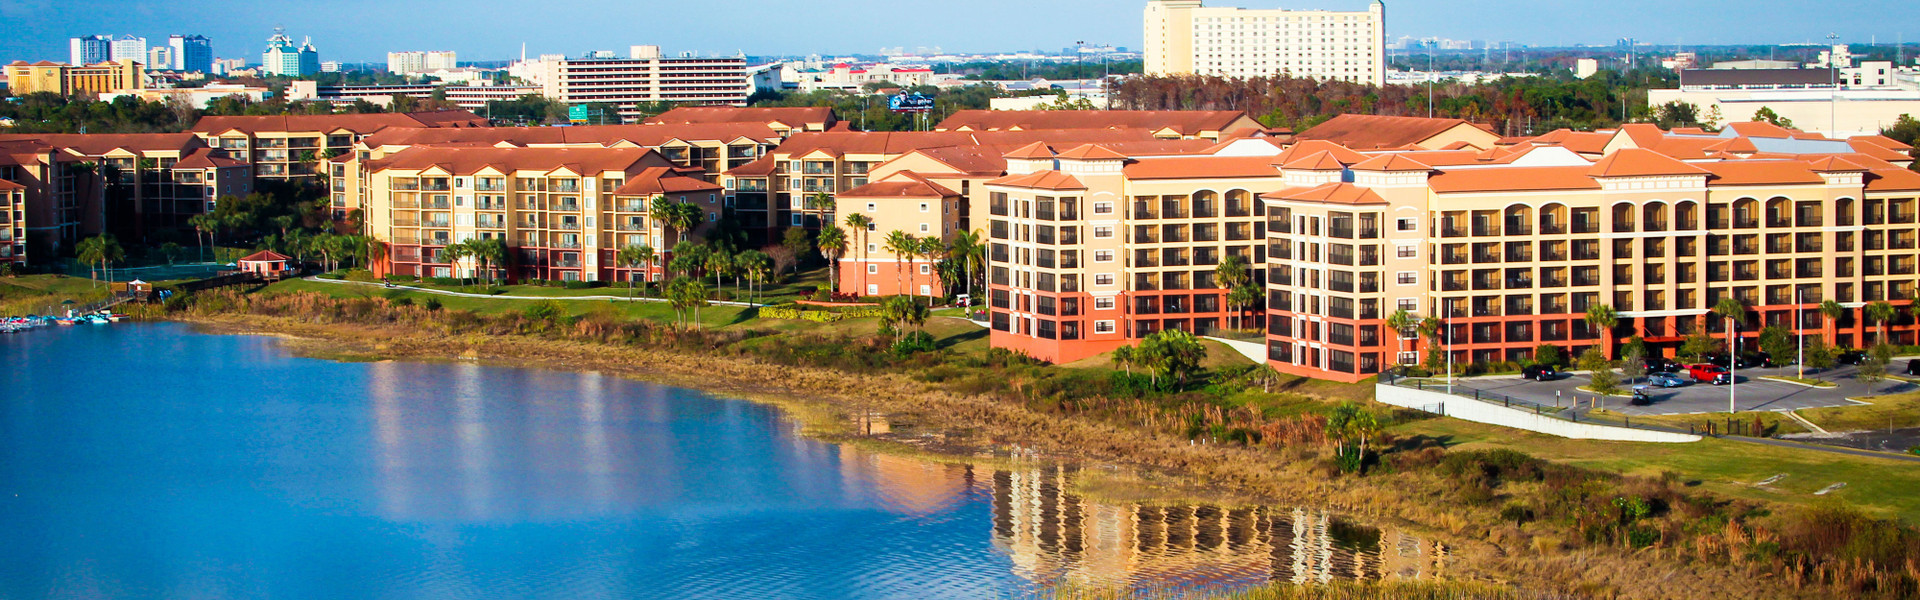 Our bed and breakfast Orlando resort | Westgate Lakes Resort & Spa